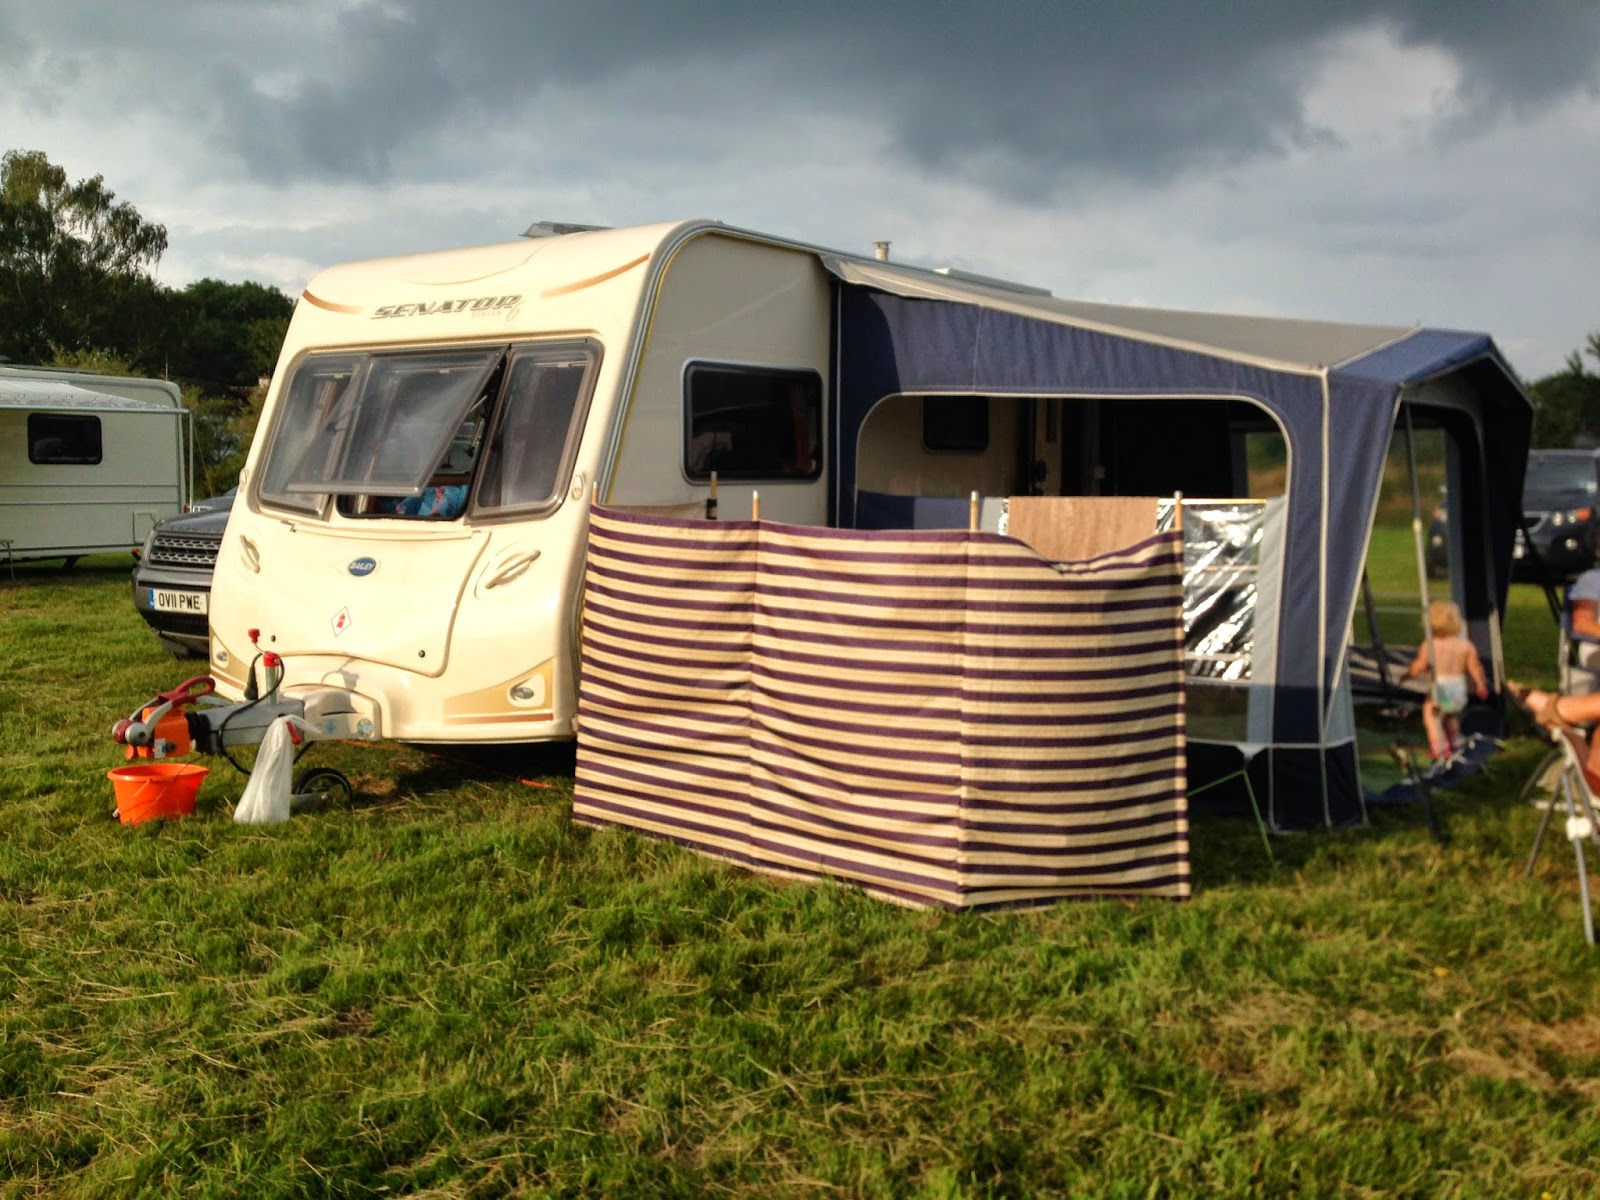 Caravan and awning under dark skies